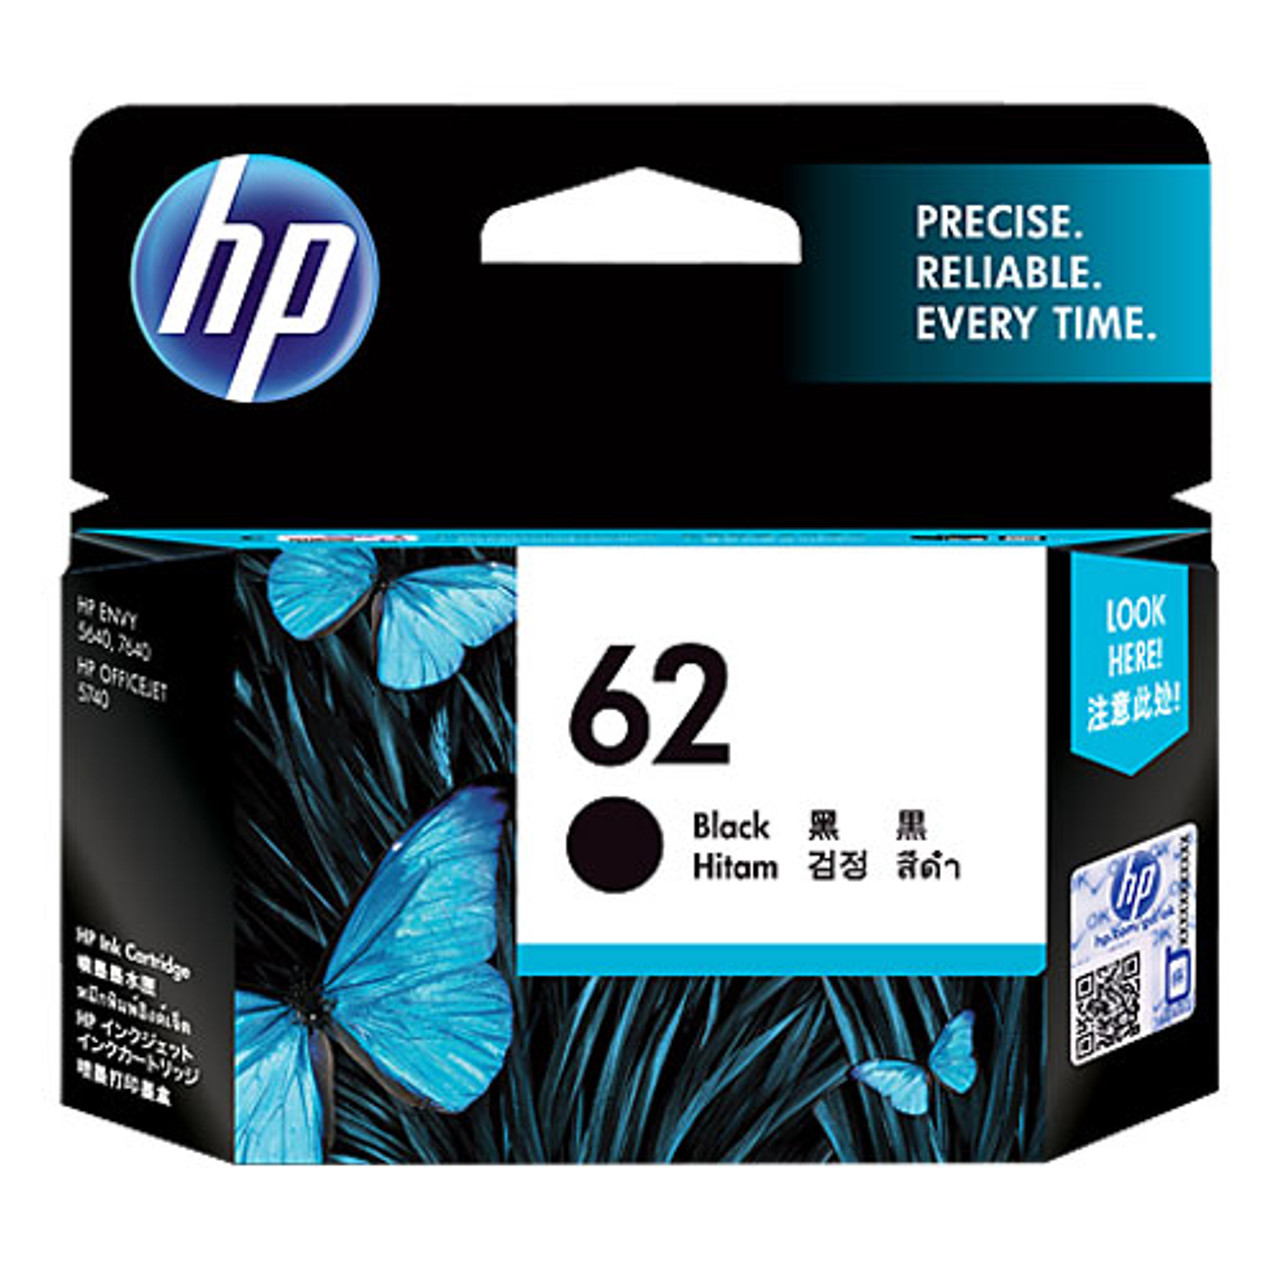 Image for HP #62 Black Ink Cartridge C2P04AA 200 pages CX Computer Superstore